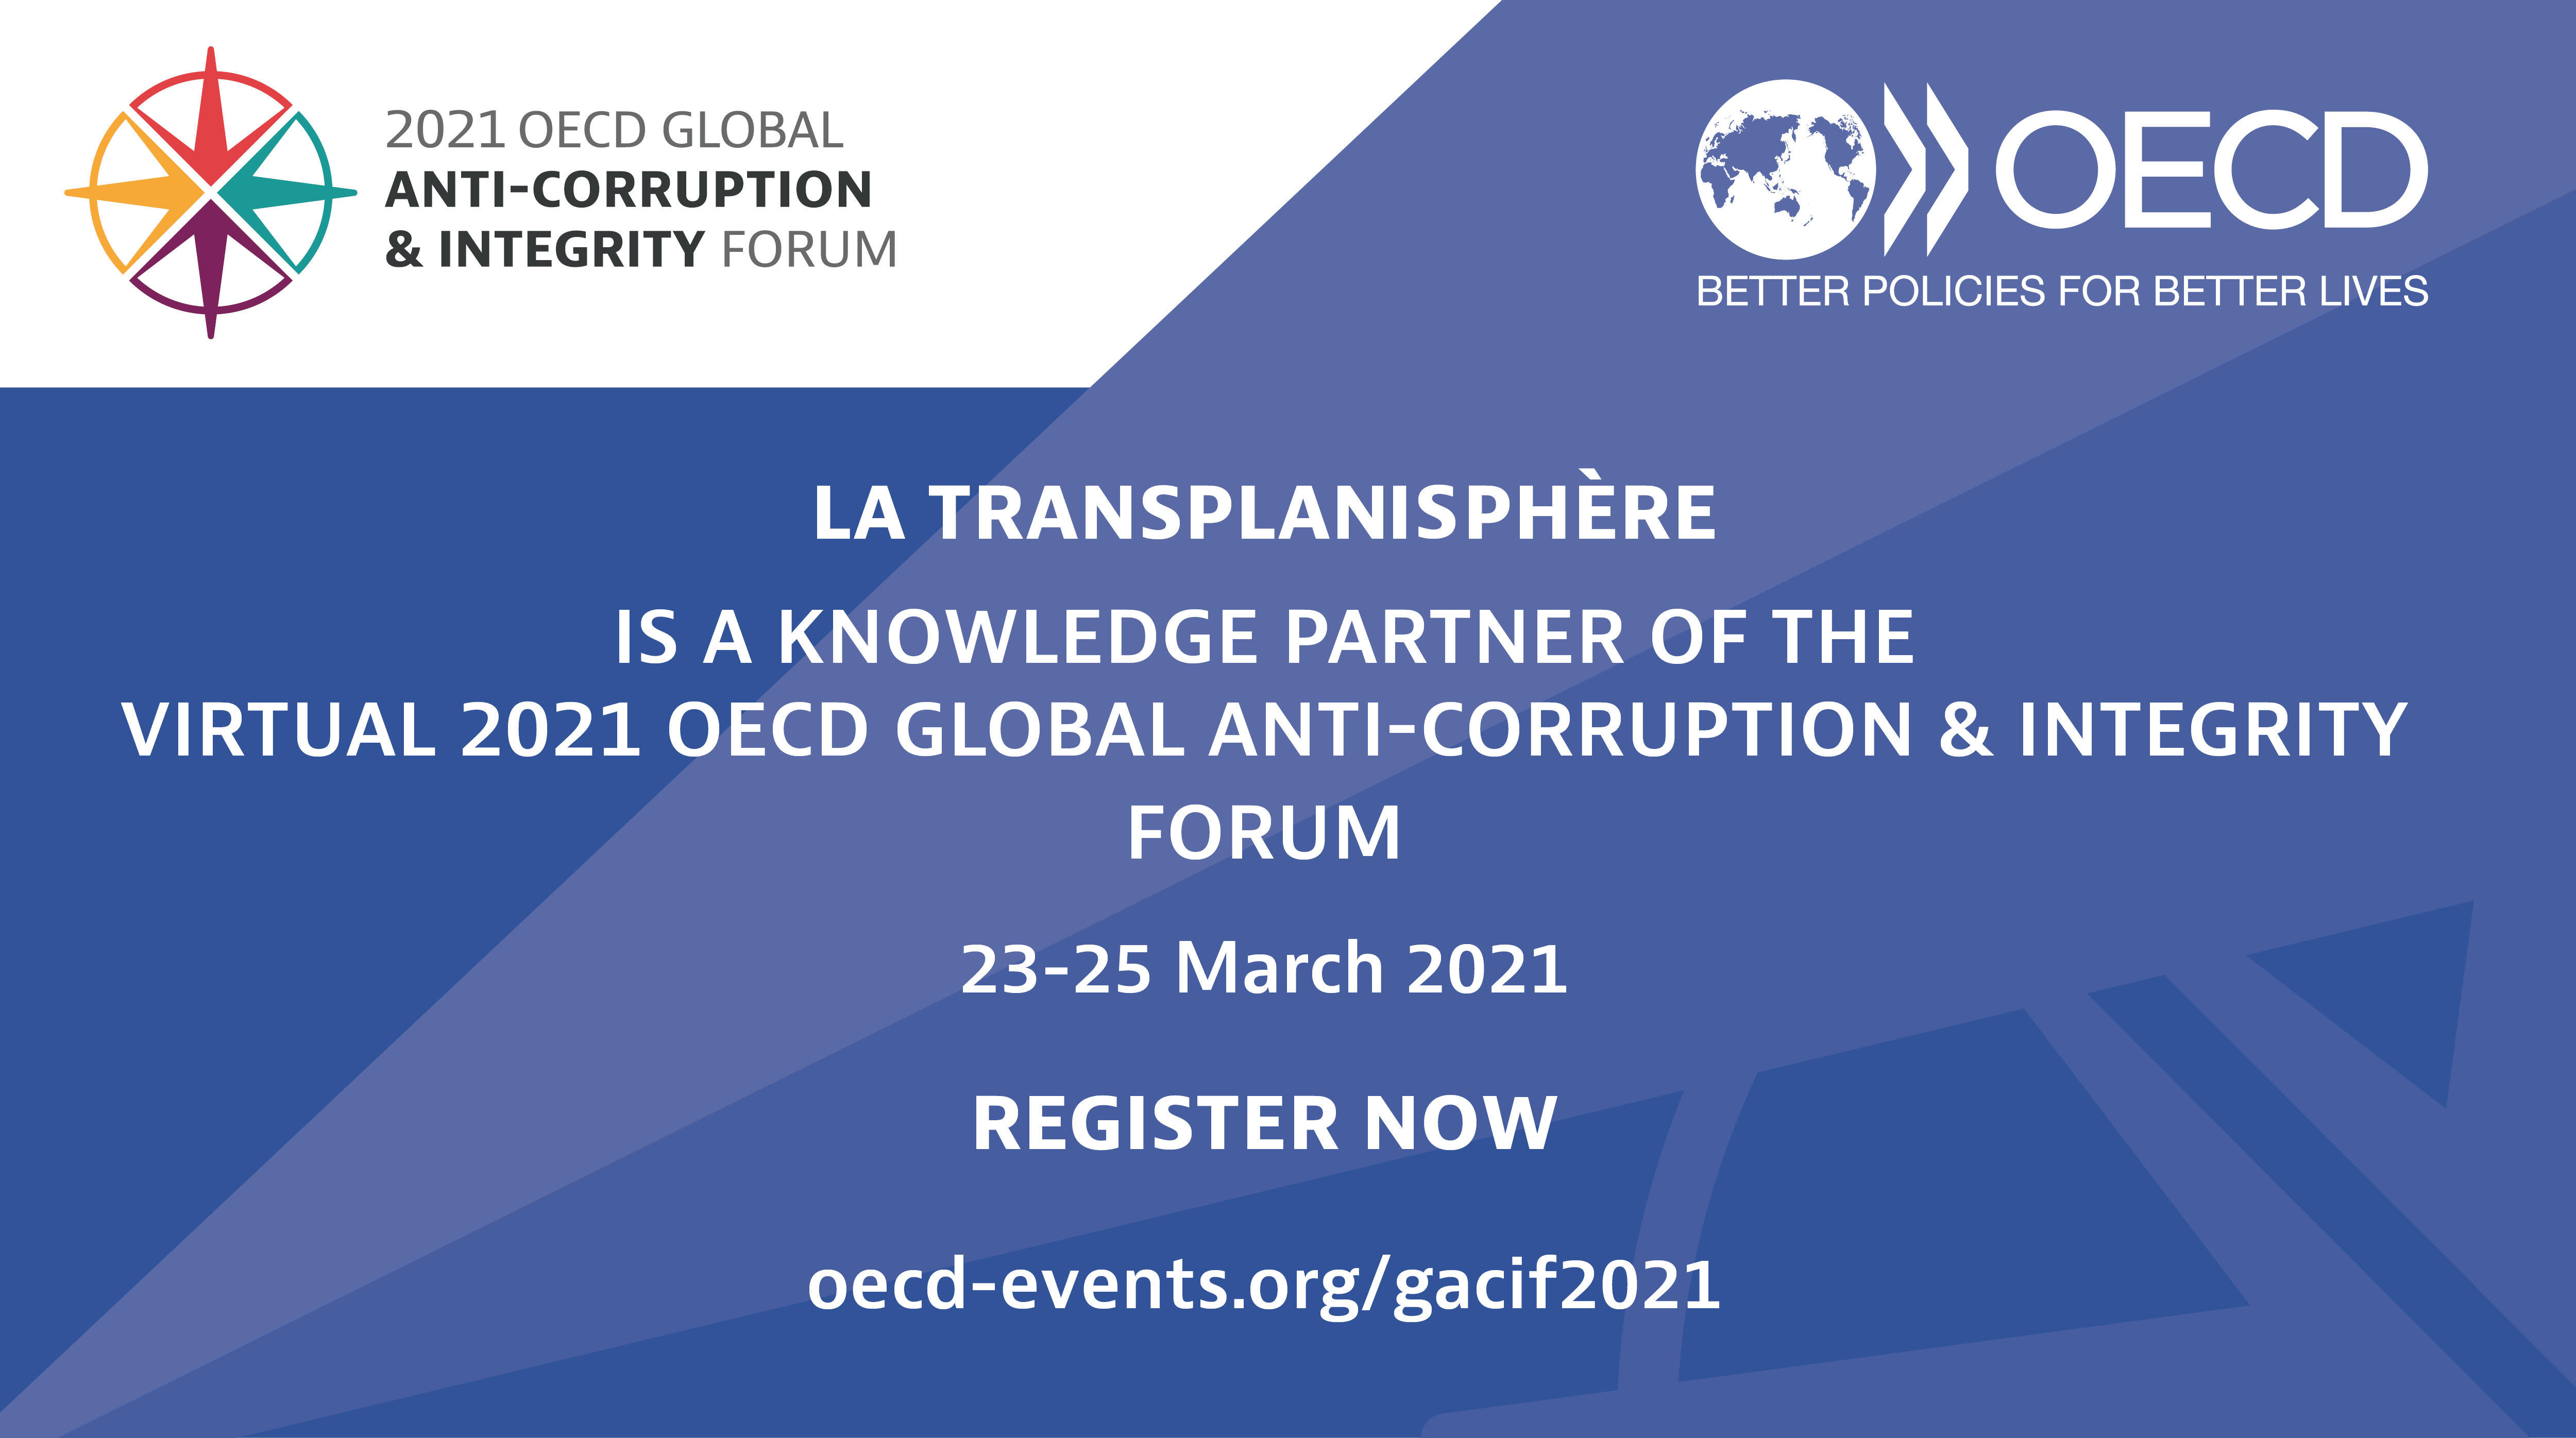 European Integrity Games is at the 2021 OECD Global Integrity Forum